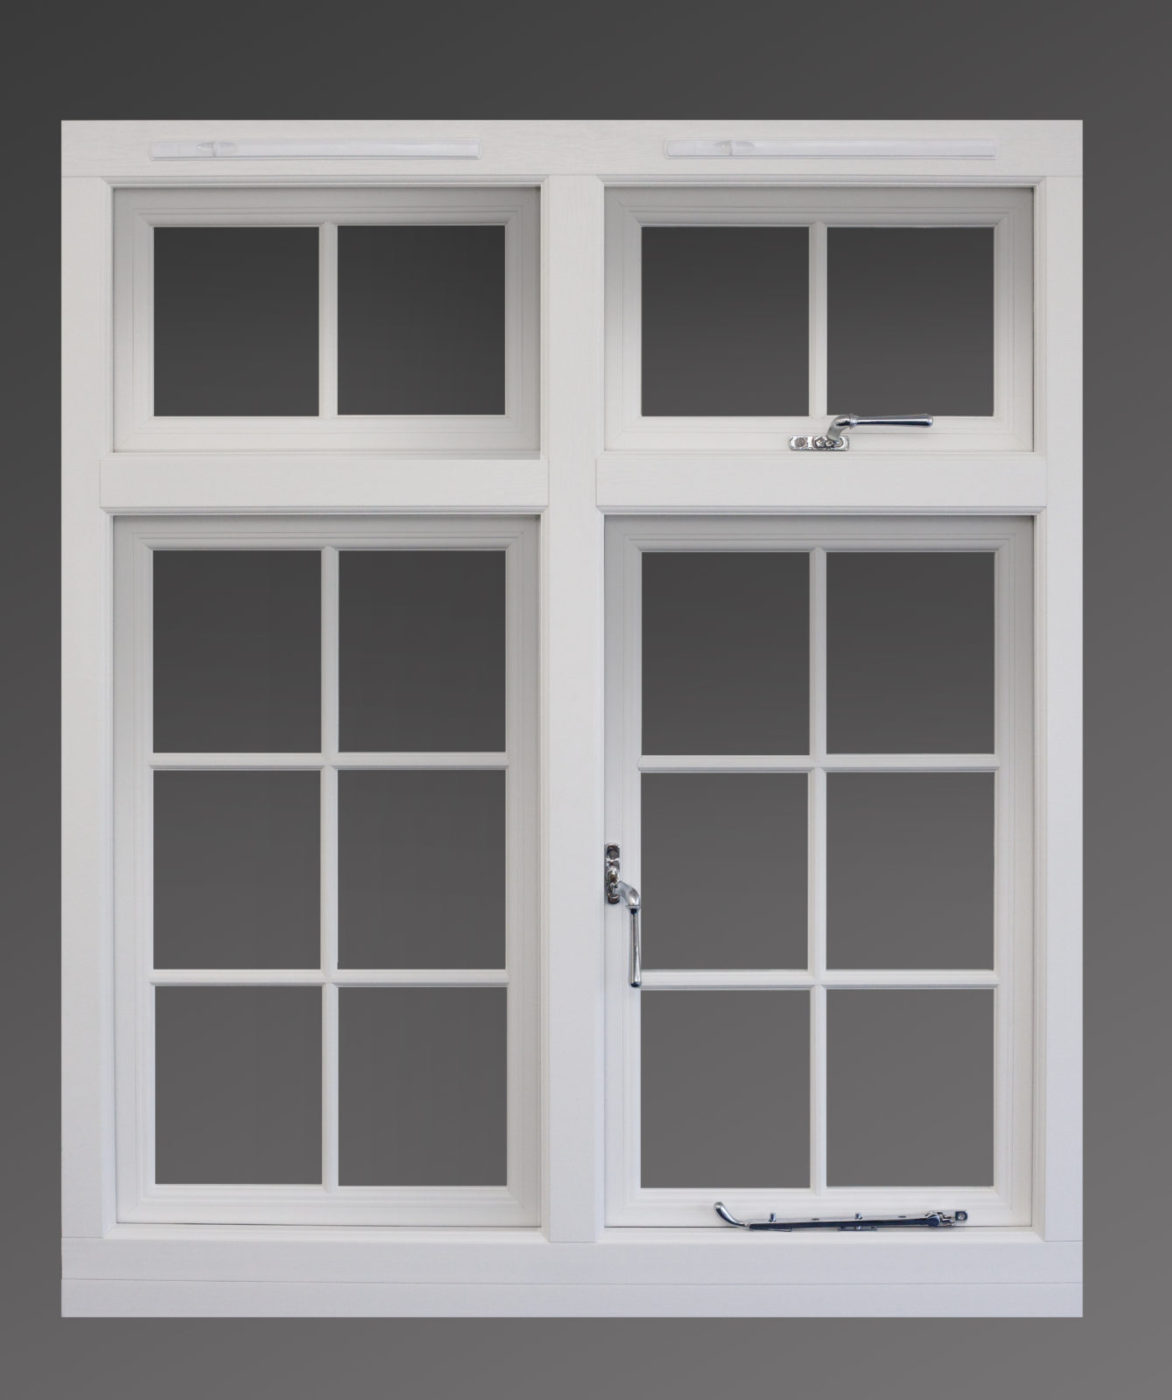 Residential house window design for Wooden windows